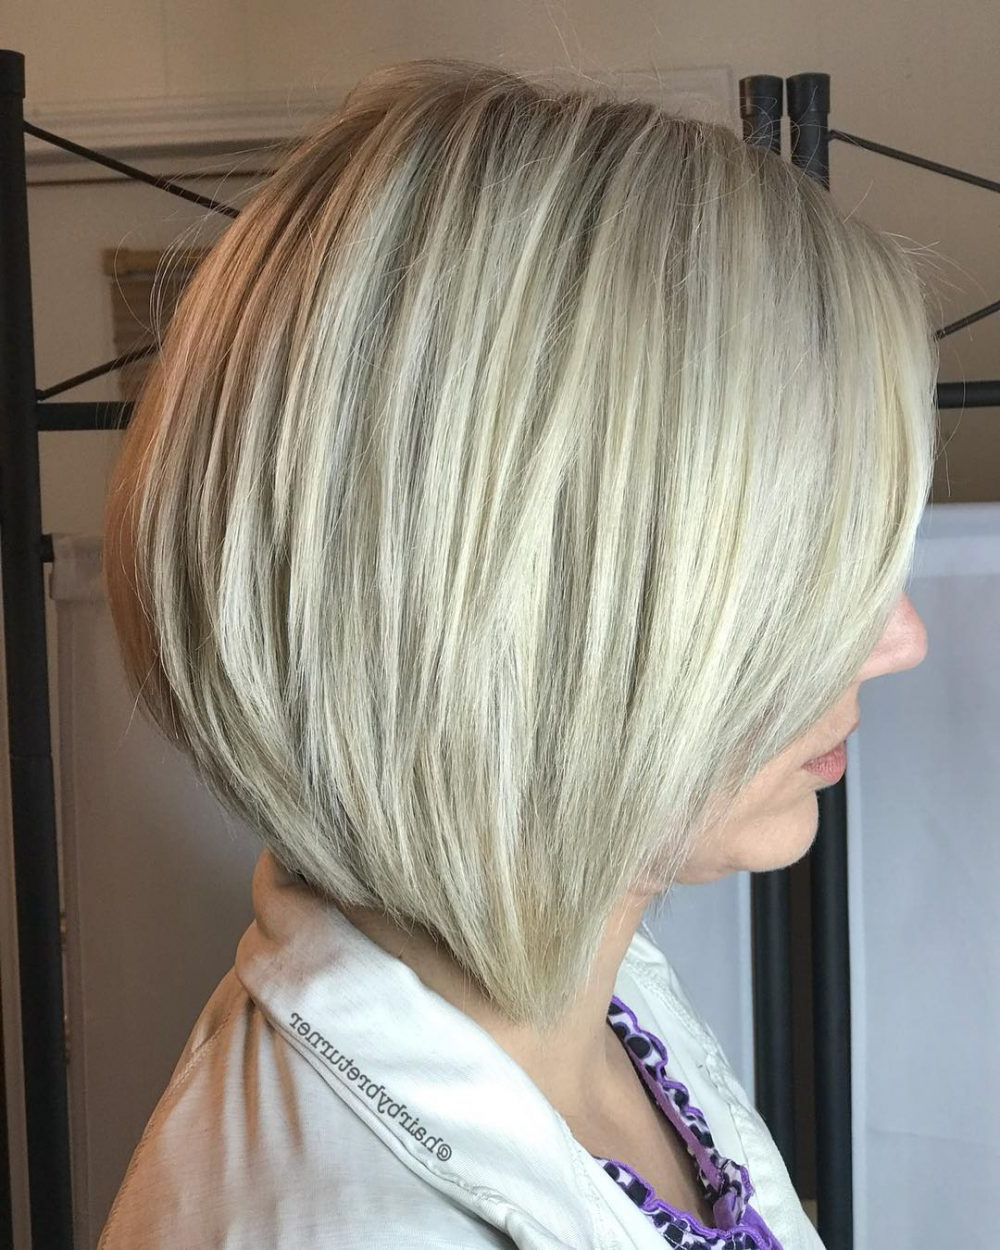 42 Sexiest Short Hairstyles For Women Over 40 In 2019 Pertaining To Current Medium Hairstyles For Women In Their 40s (View 11 of 20)